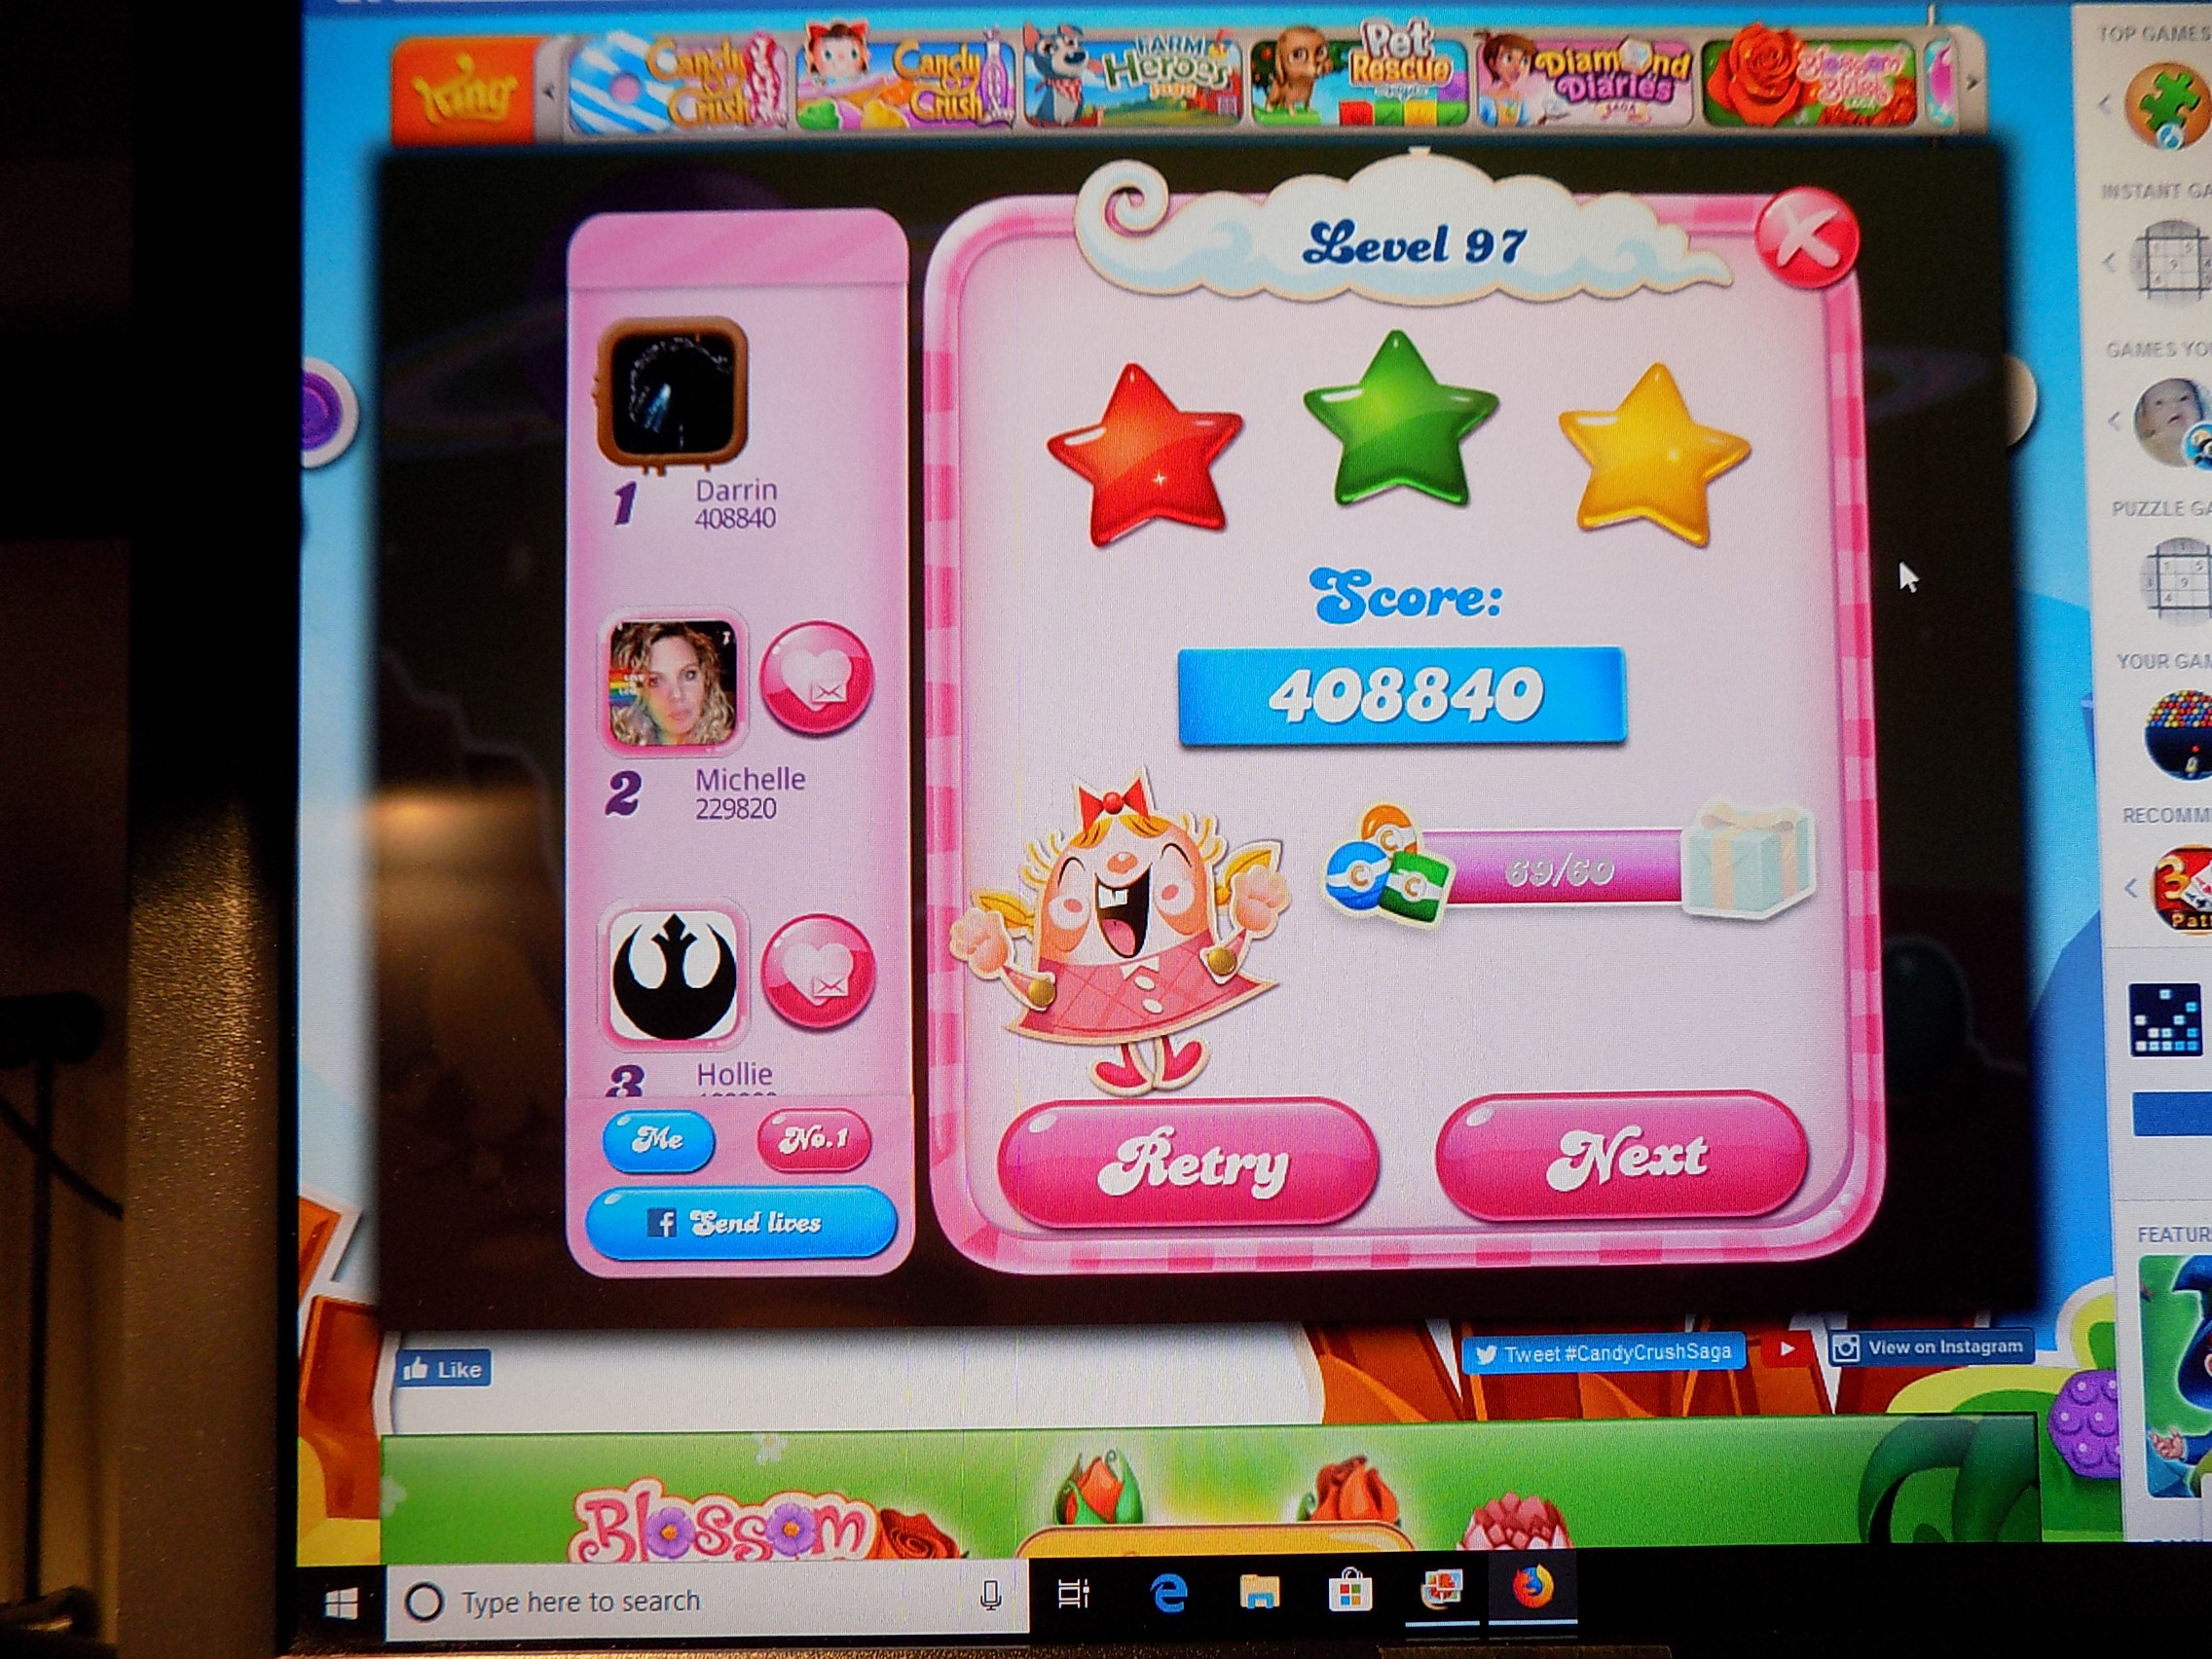 darrin9999: Candy Crush Saga: Level 097 (Web) 408,840 points on 2019-06-25 10:51:23